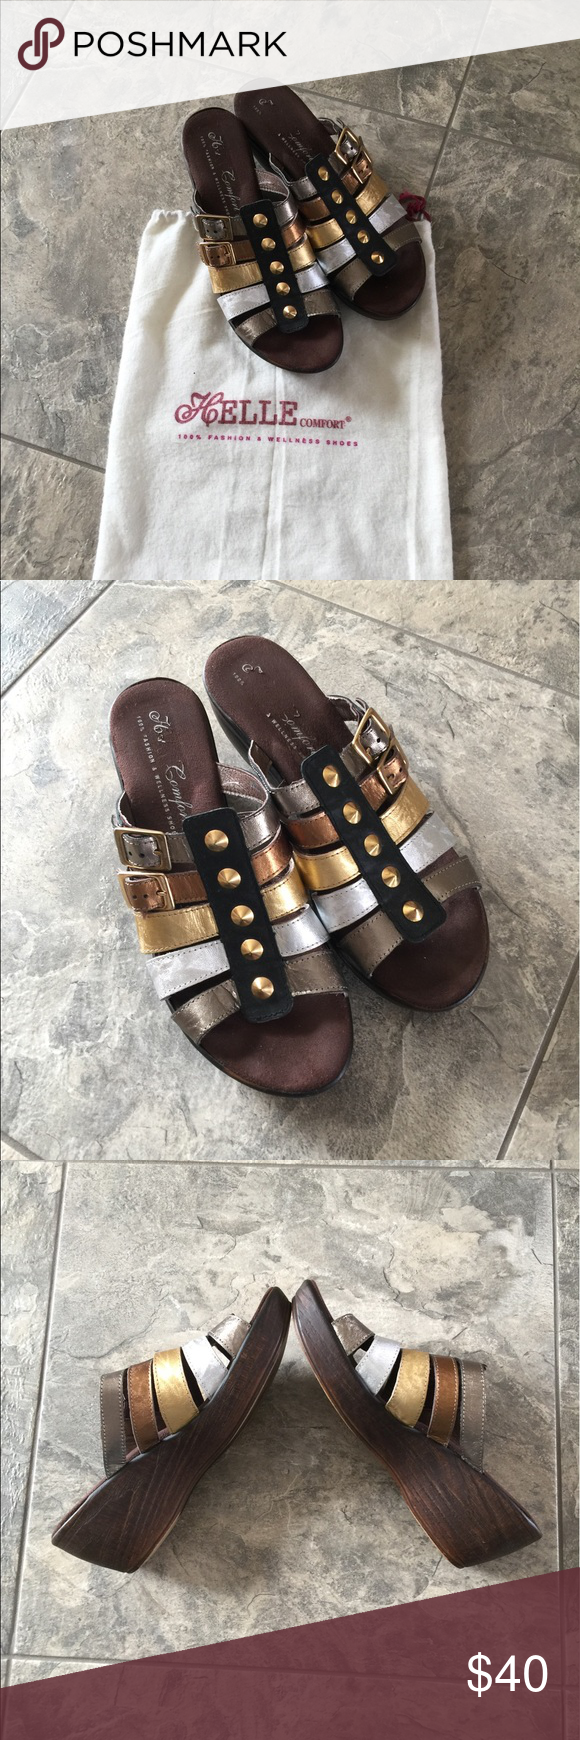 lasts stock store helle comfort online hurry s melissa p sandals wedge metallic canada womens comforter multi shoes while women